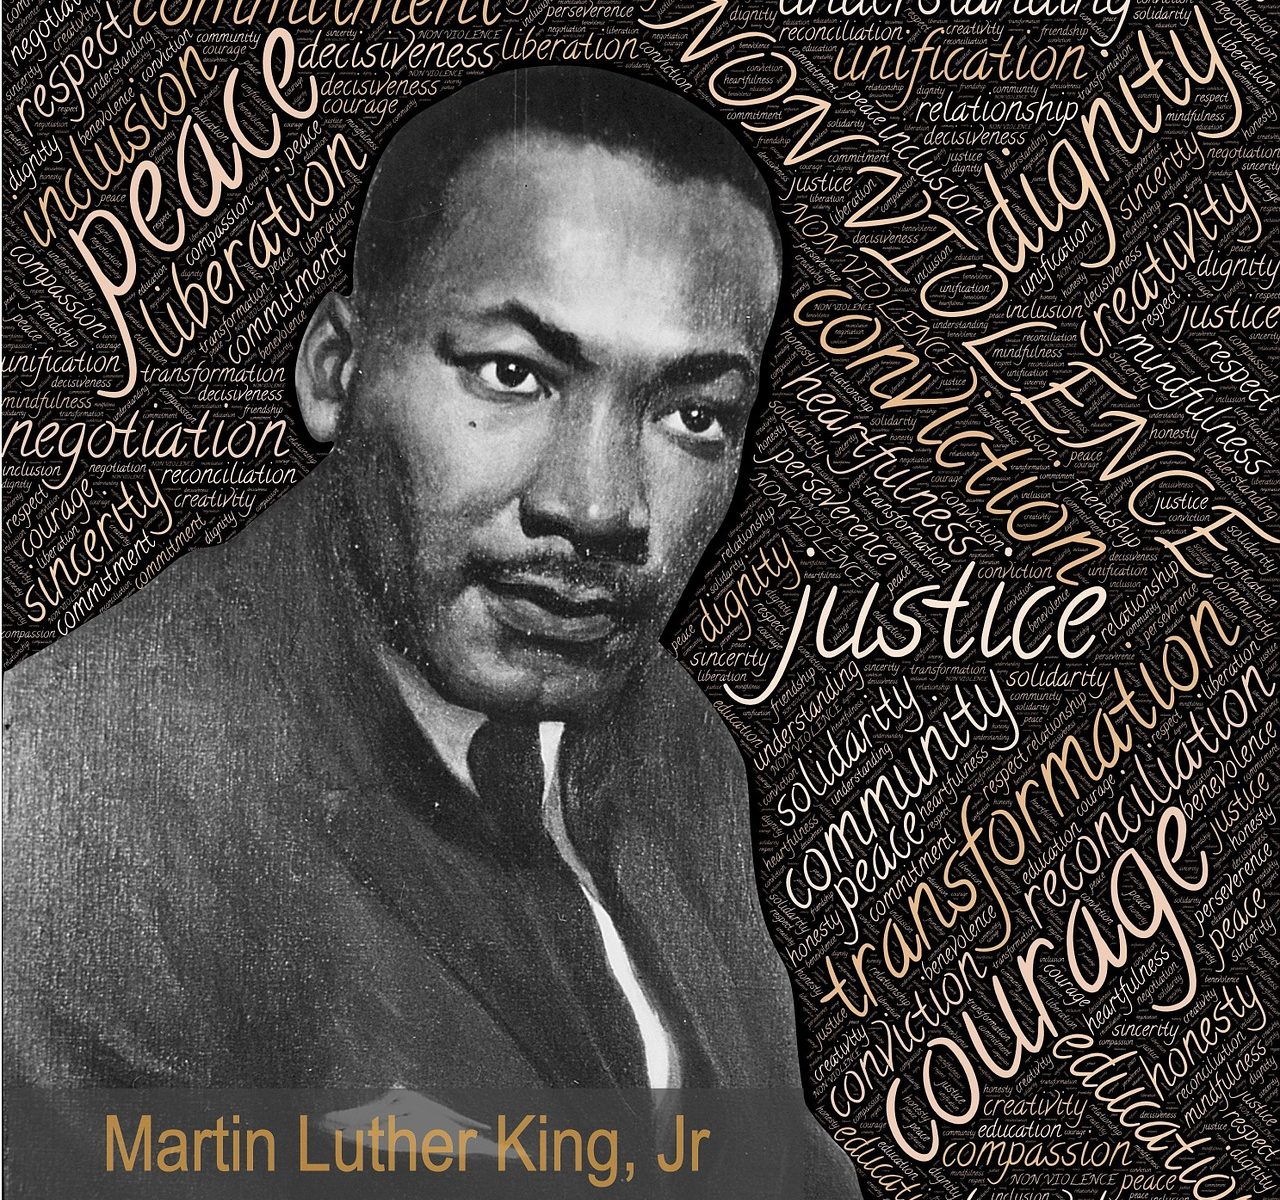 The River of Pride Martin Luther King